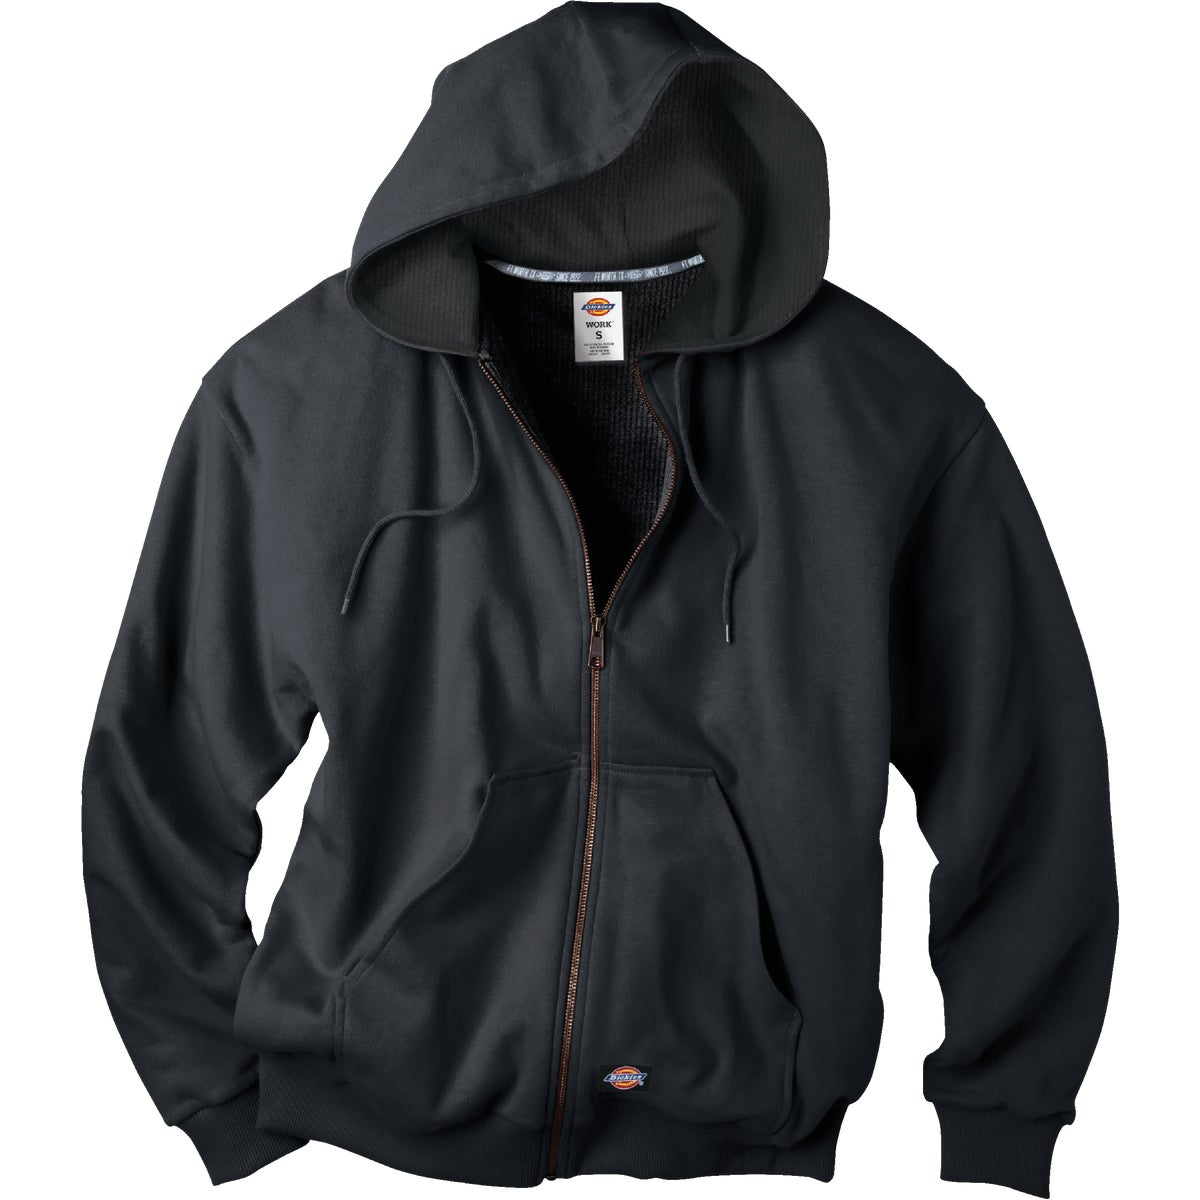 2X BLK HOOD FLC JACKET - TW382BK-2X by Dickies